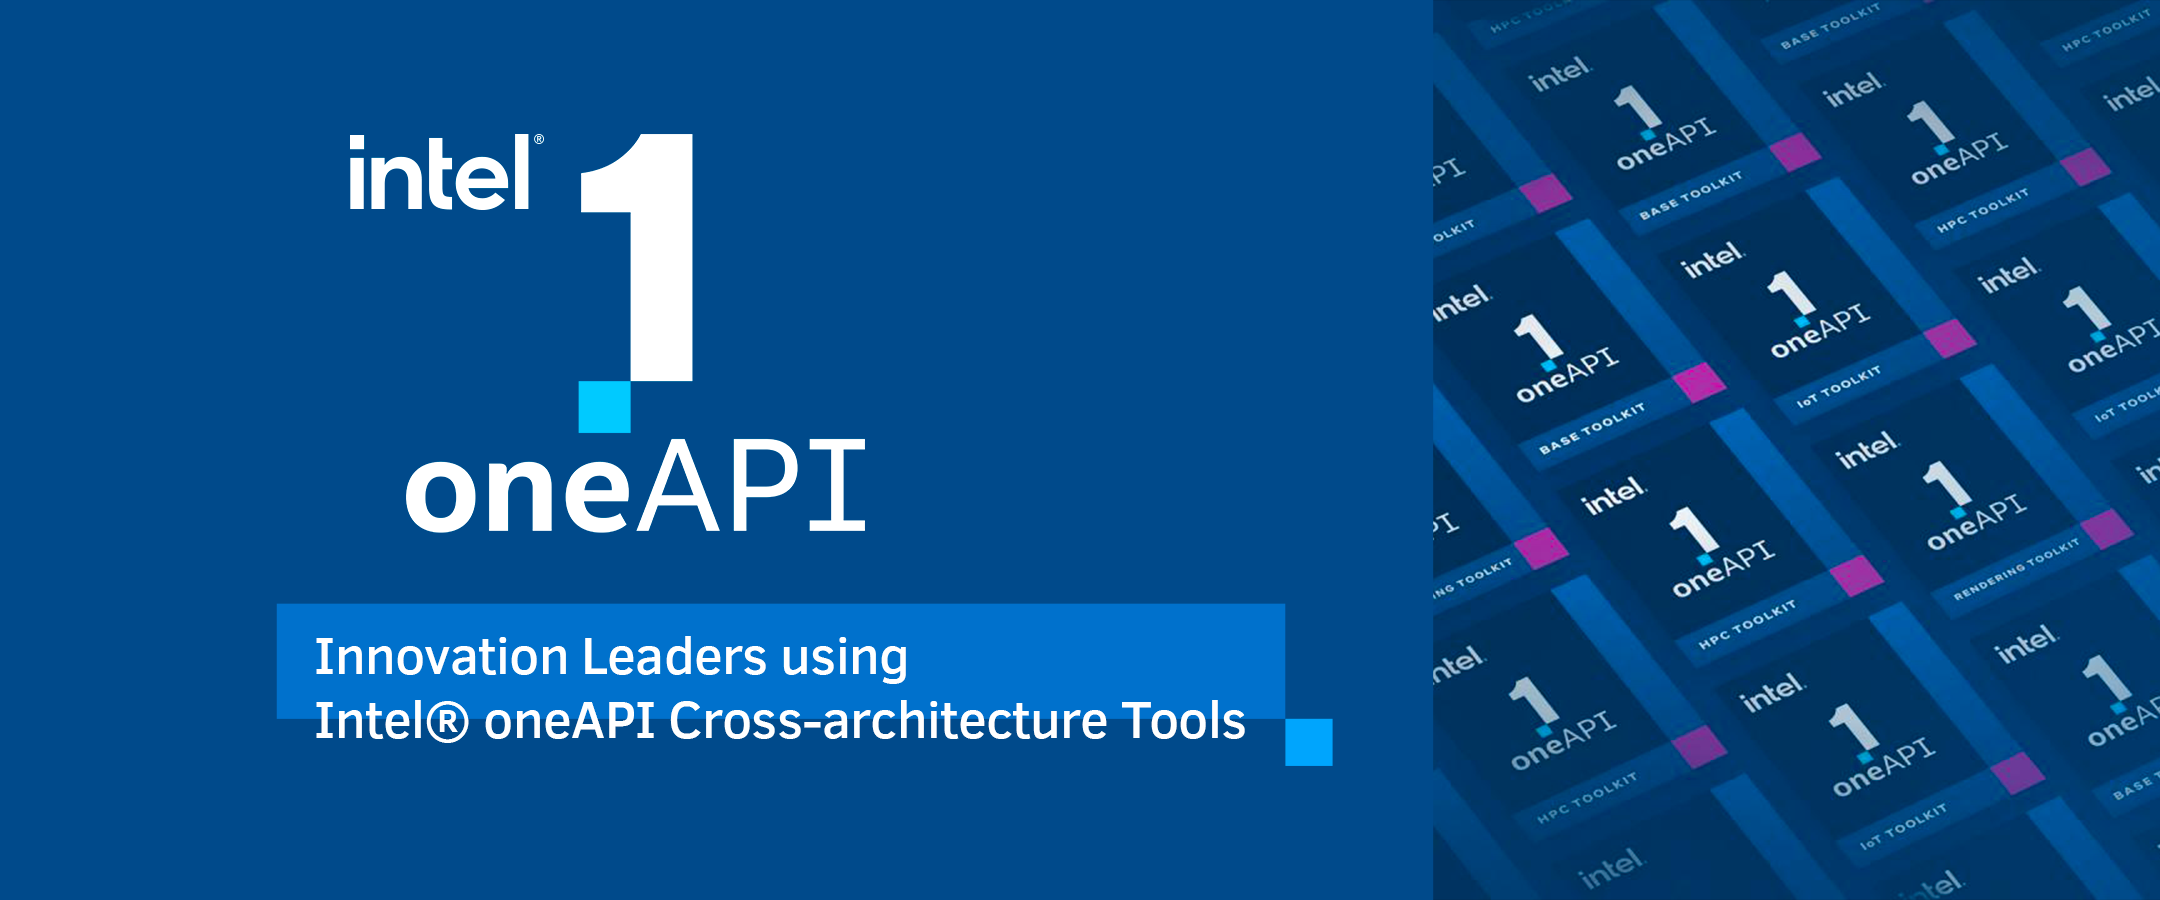 Innovation Leaders using Intel® oneAPI Cross-architecture Tools